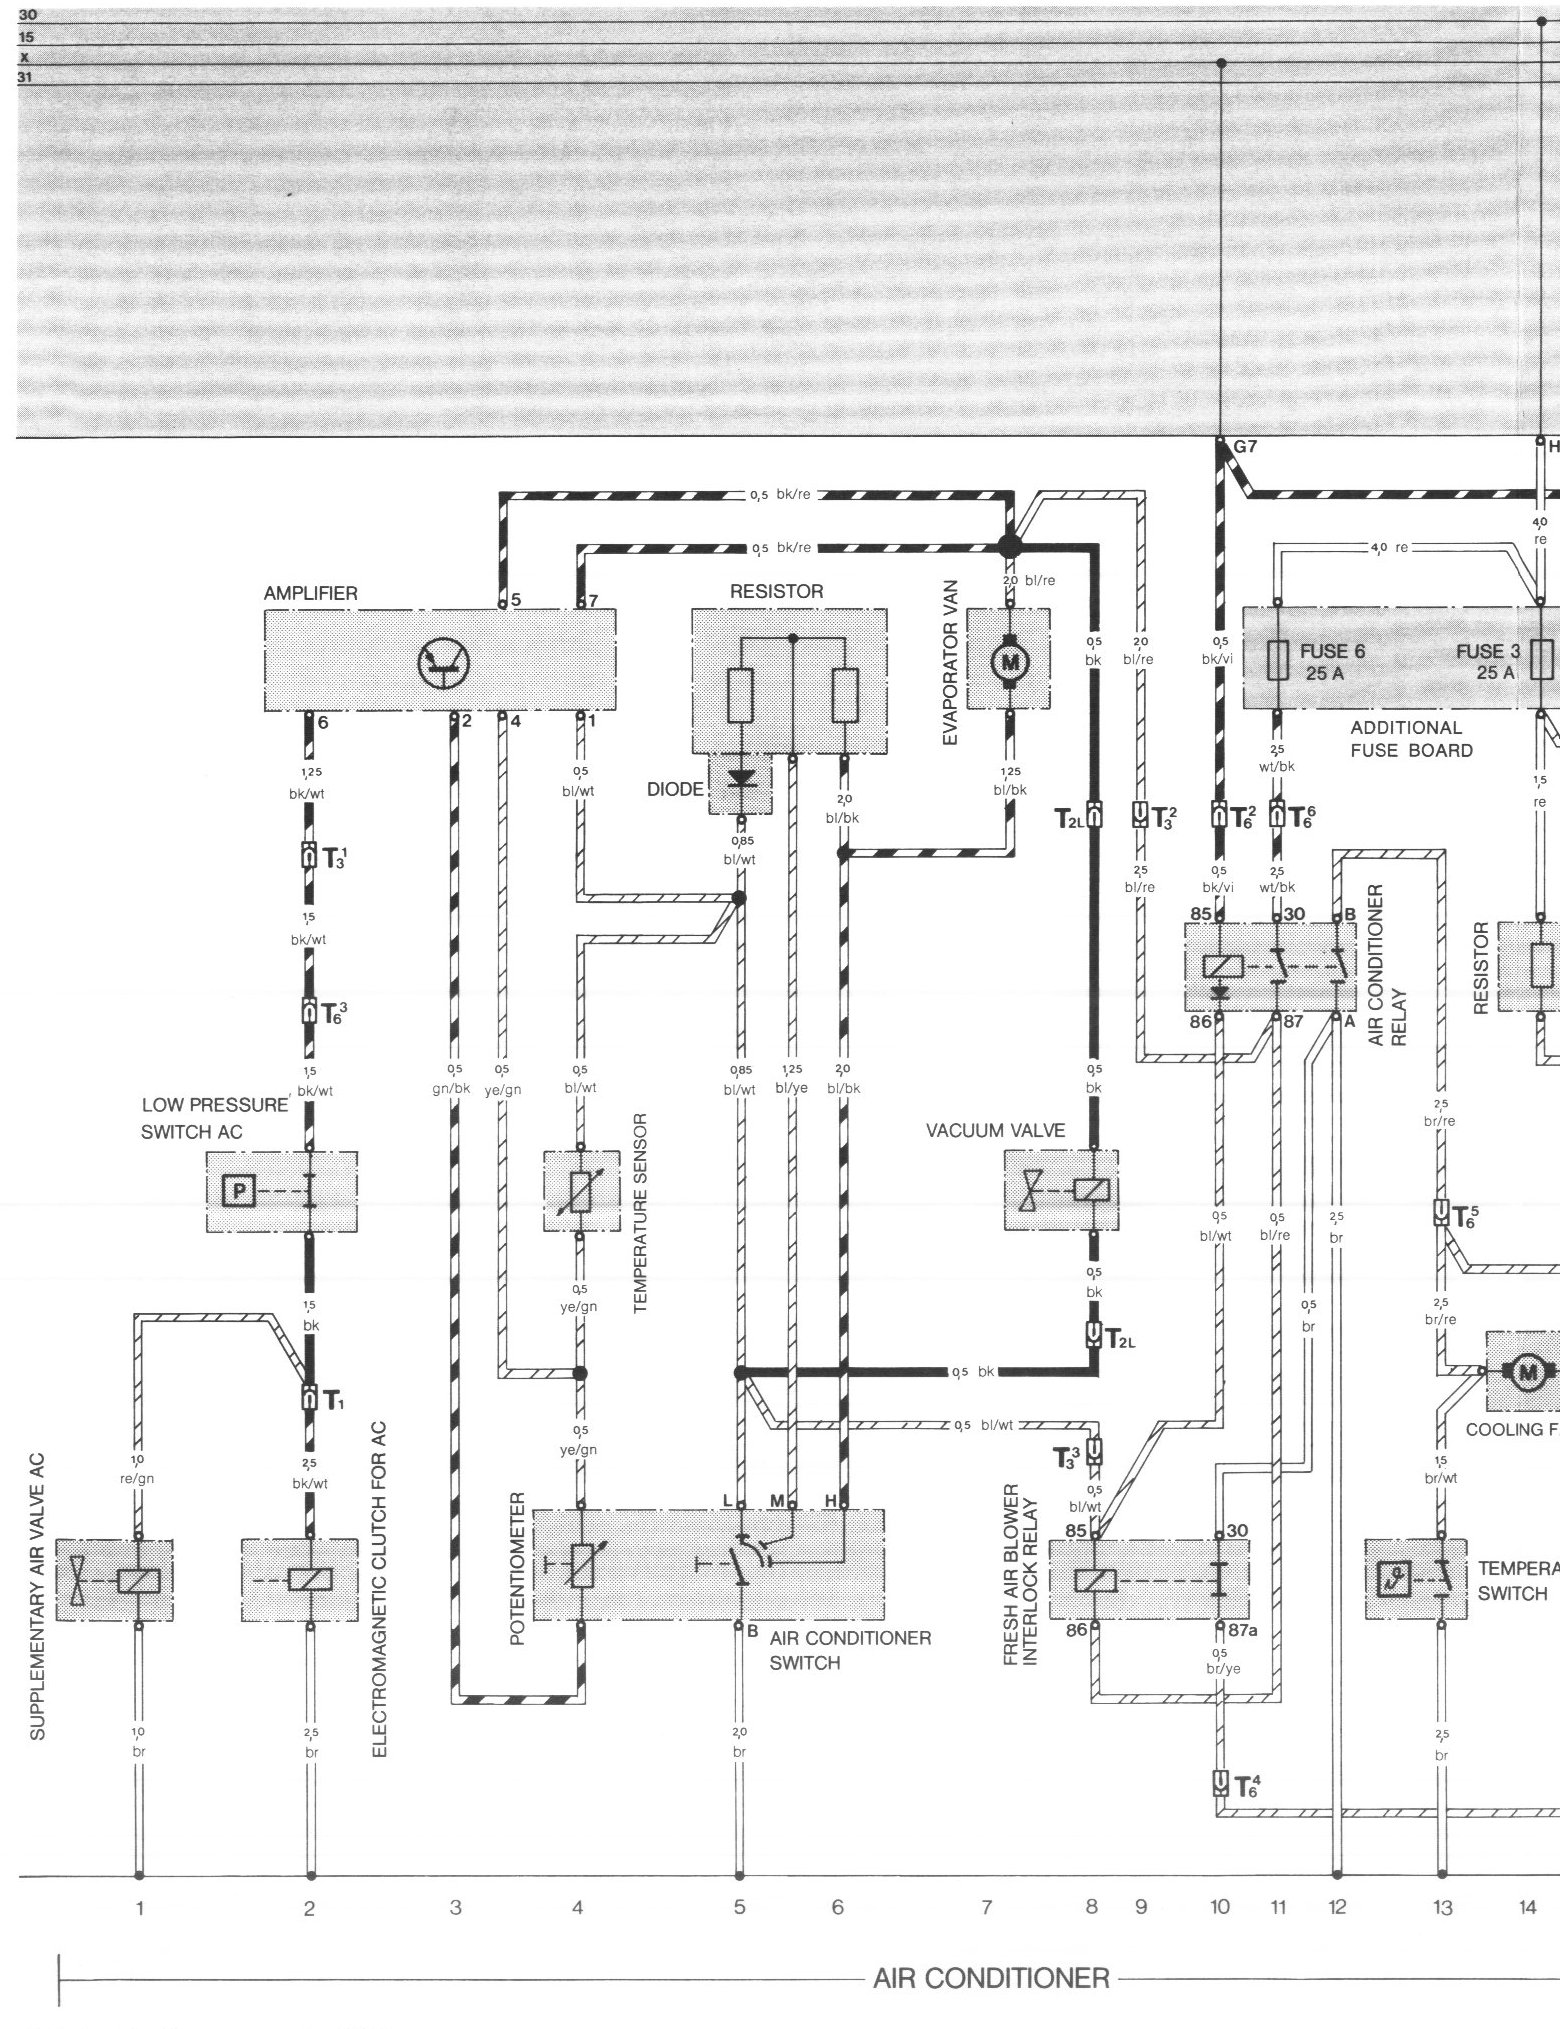 944_84_AC_1 pelican parts porsche 924 944 electrical diagrams 1984 porsche 944 fuse box diagram at webbmarketing.co